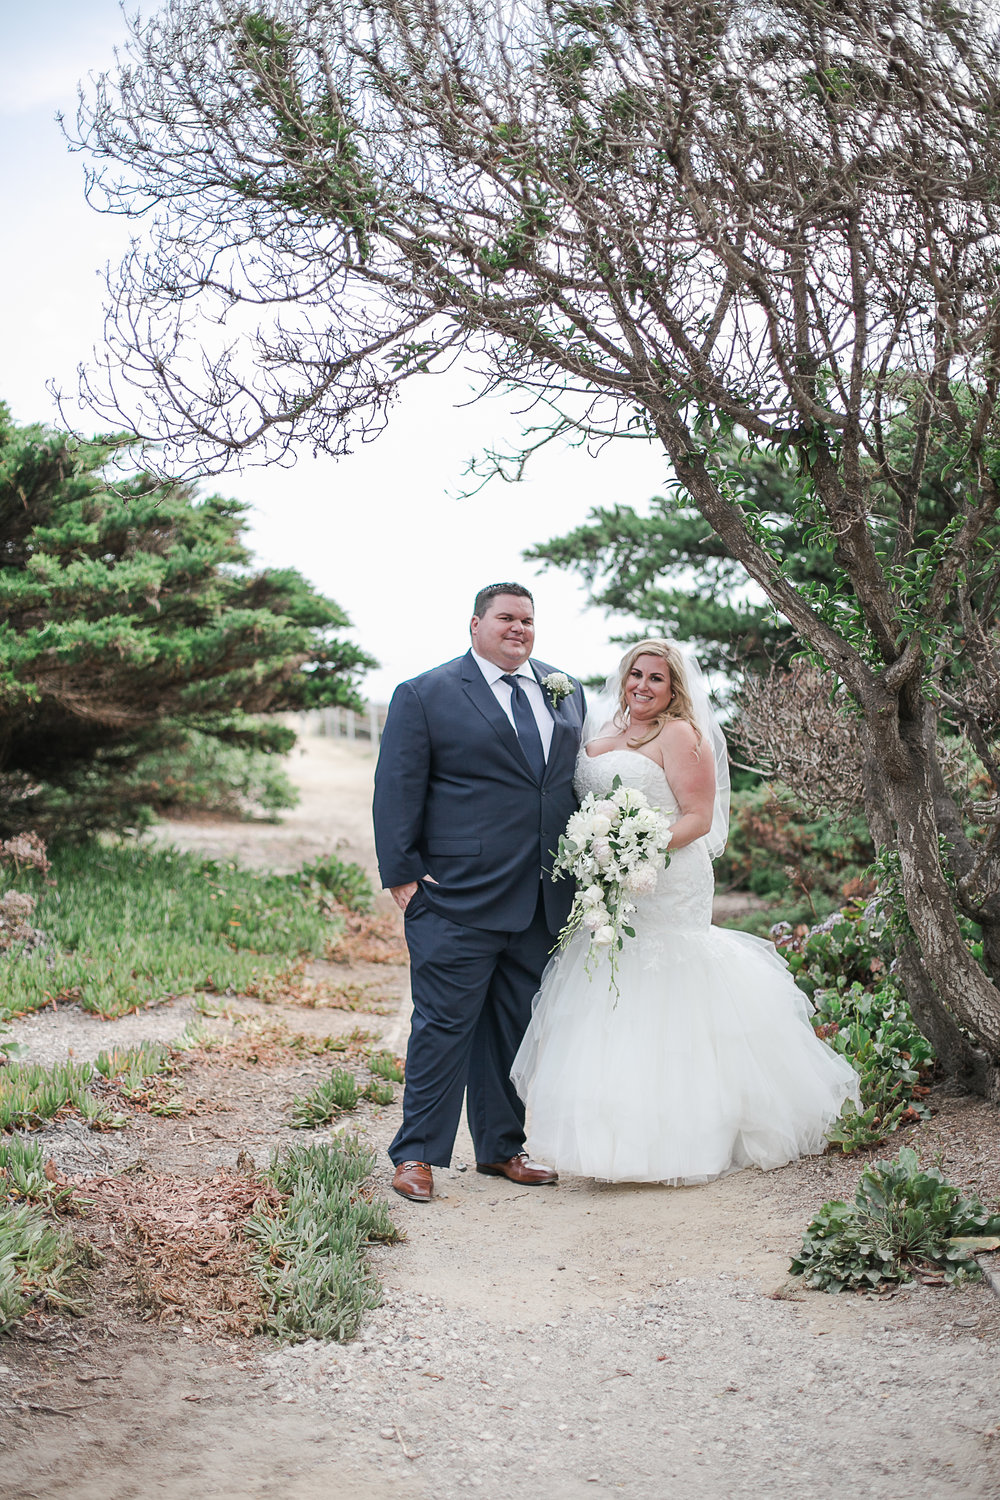 Jen_&_Mike_Del_Mar_Powerhouse_Wedding_2017 (31 of 45).jpg